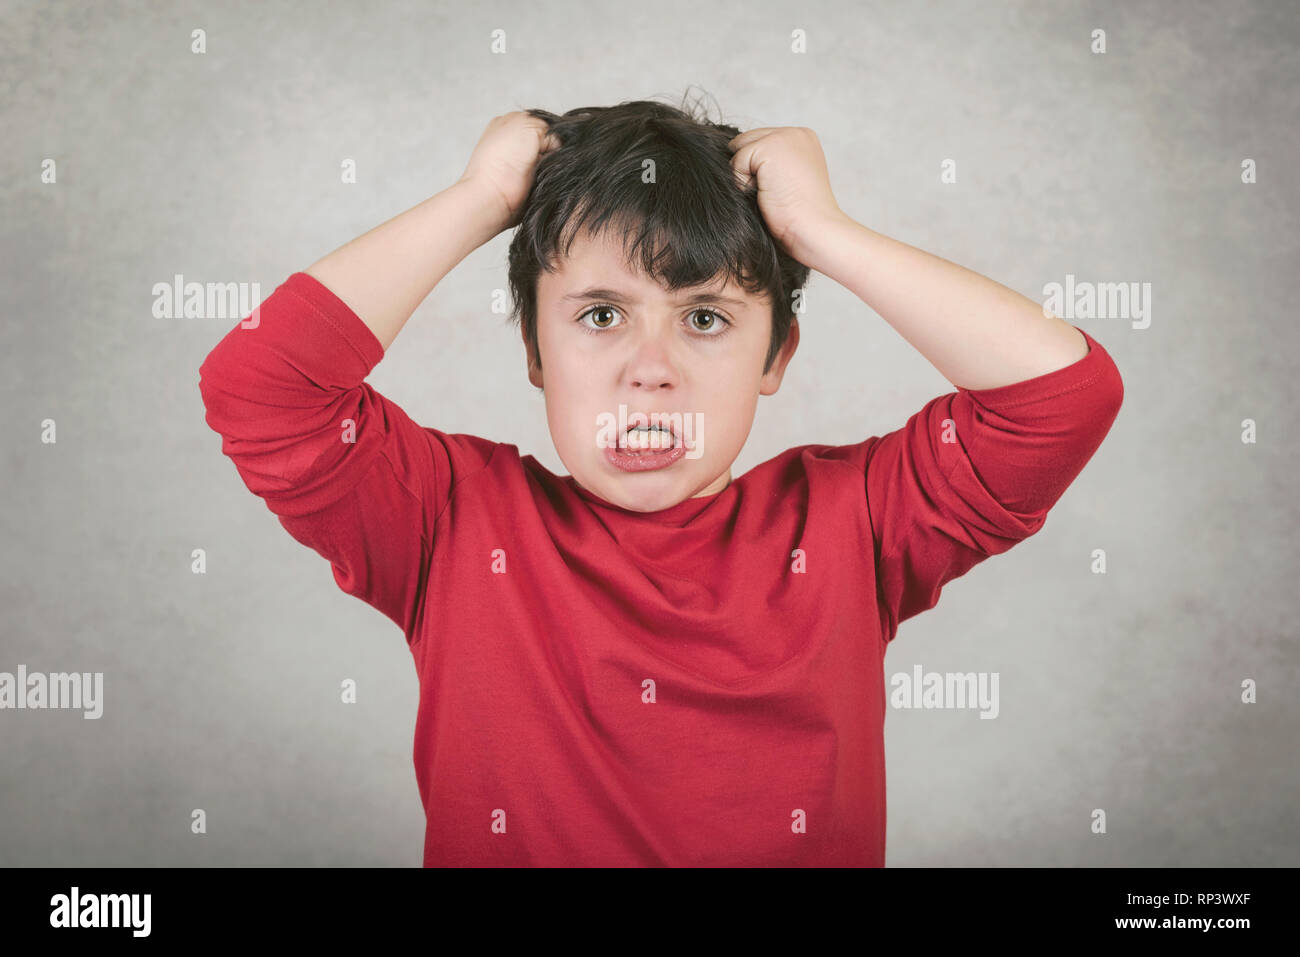 angry boy who pulls his hair against gray background - Stock Image